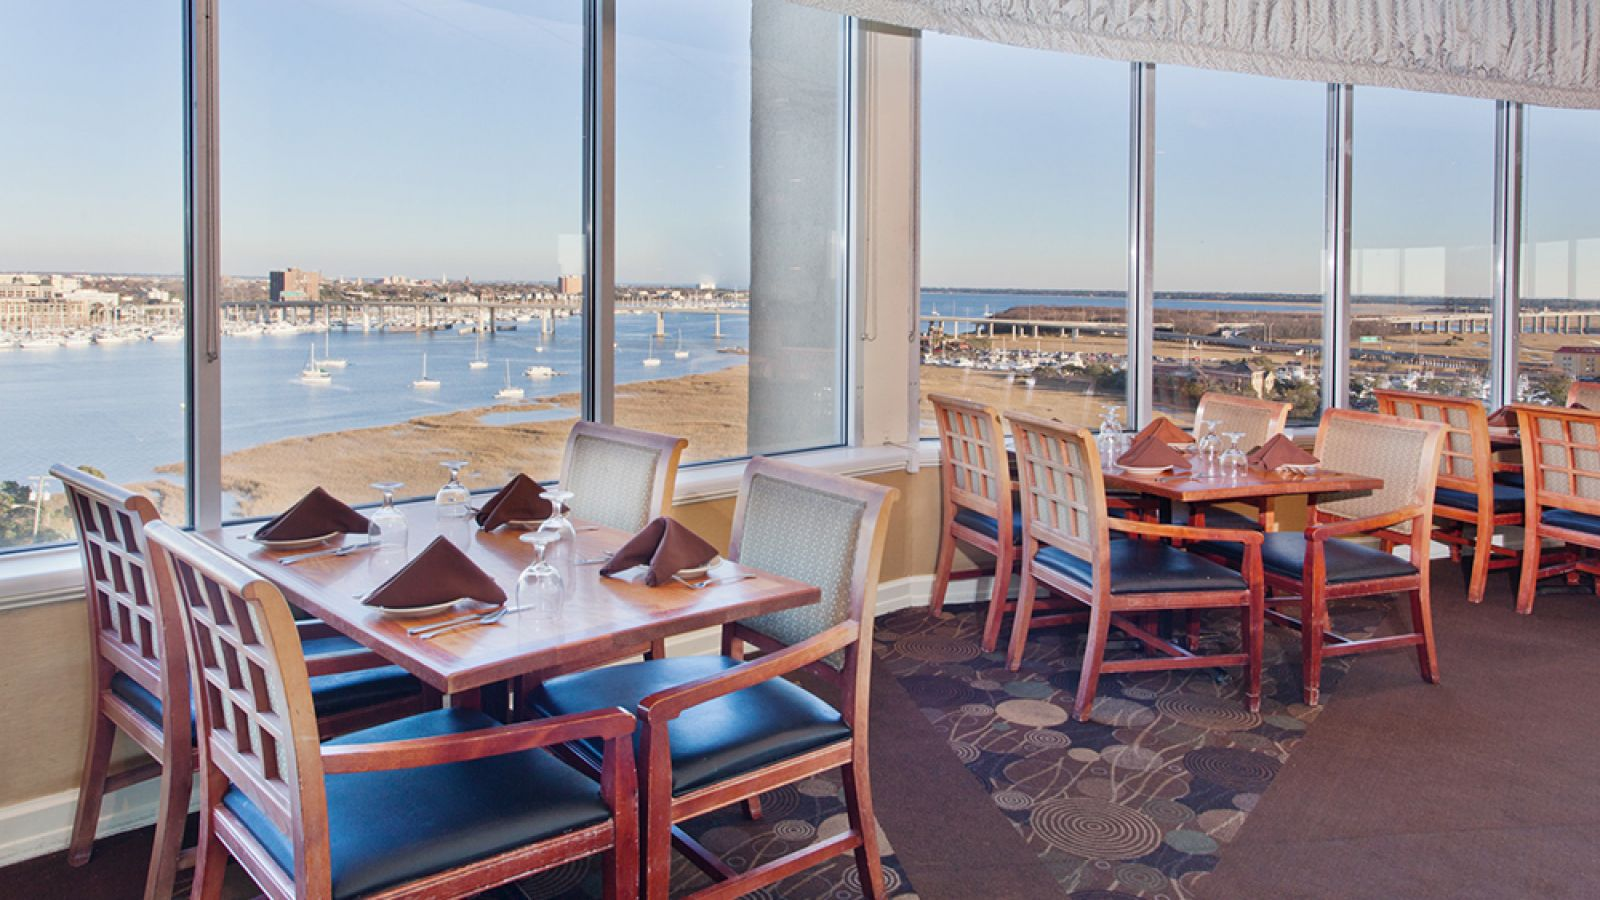 Holiday Inn Charleston Riverview - rooftop dining